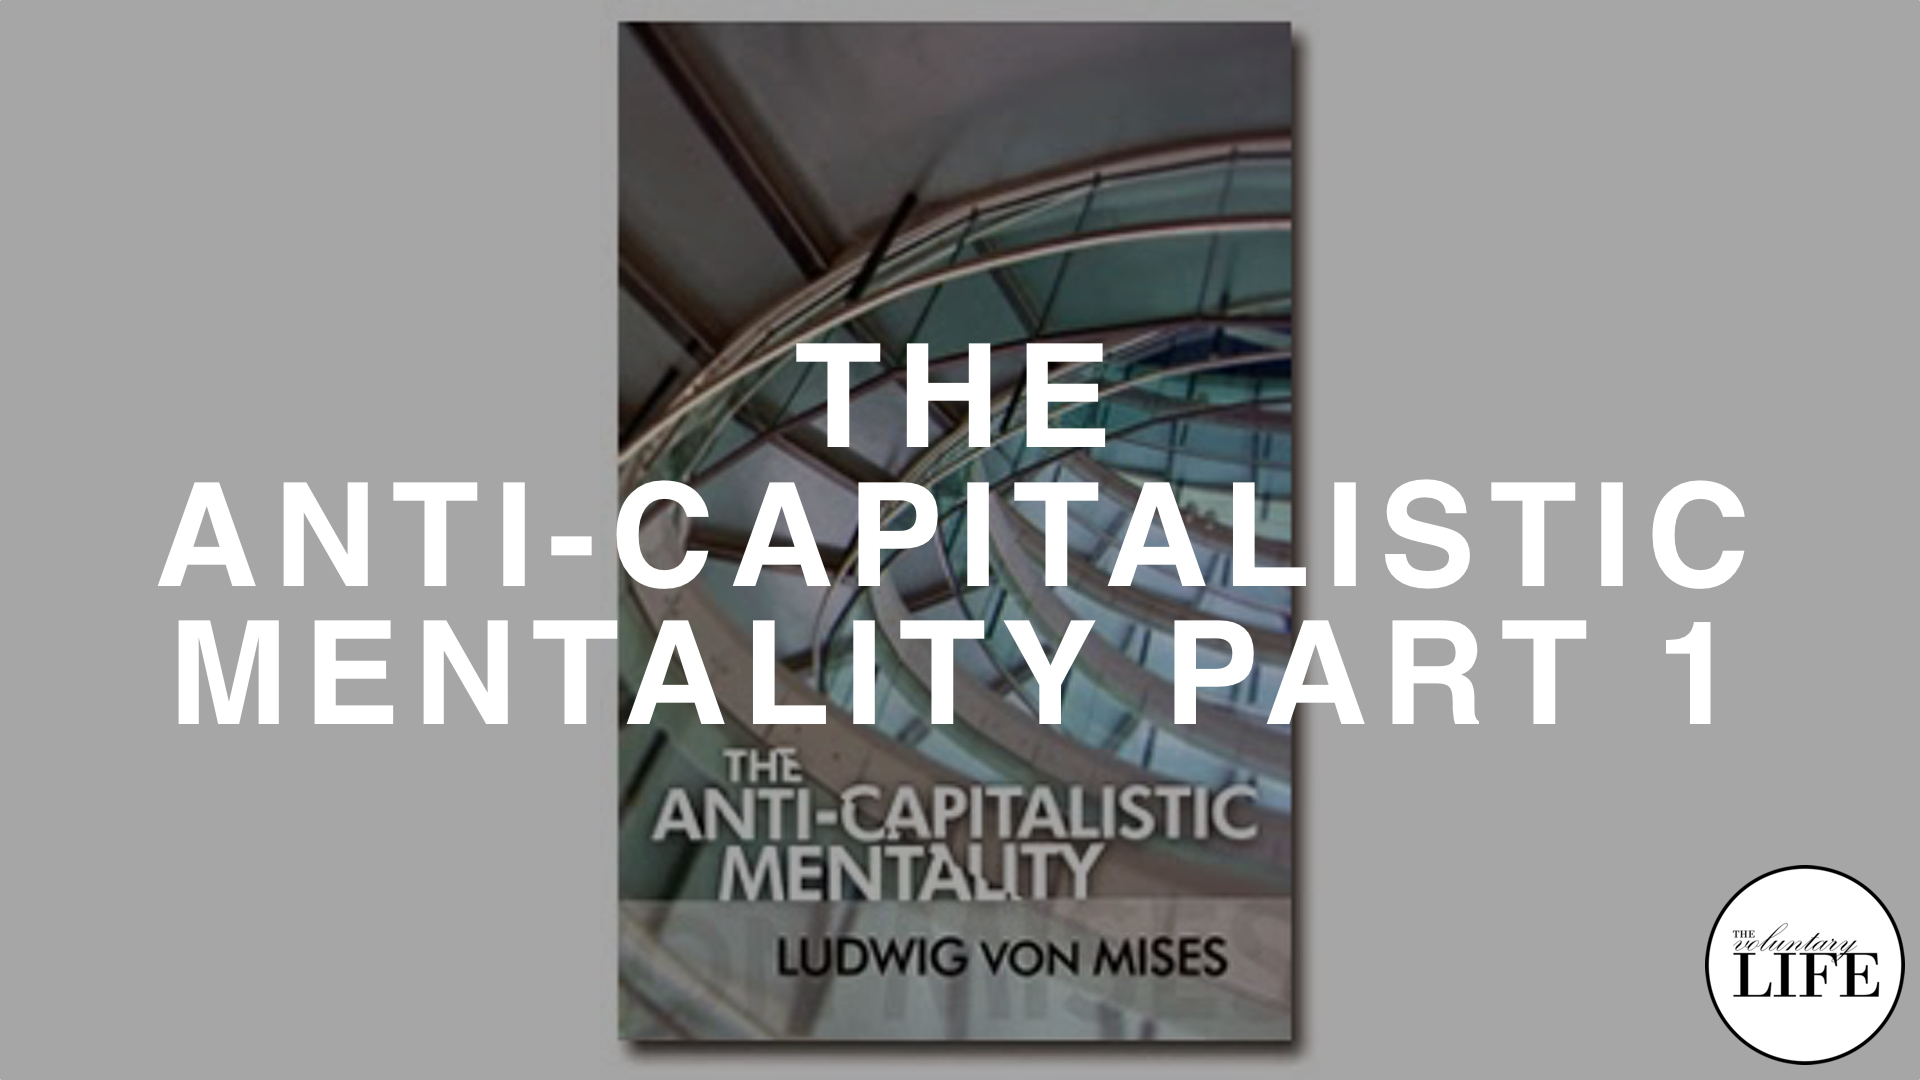 176 The Anti-Capitalistic Mentality by Ludwig Von Mises Part 1